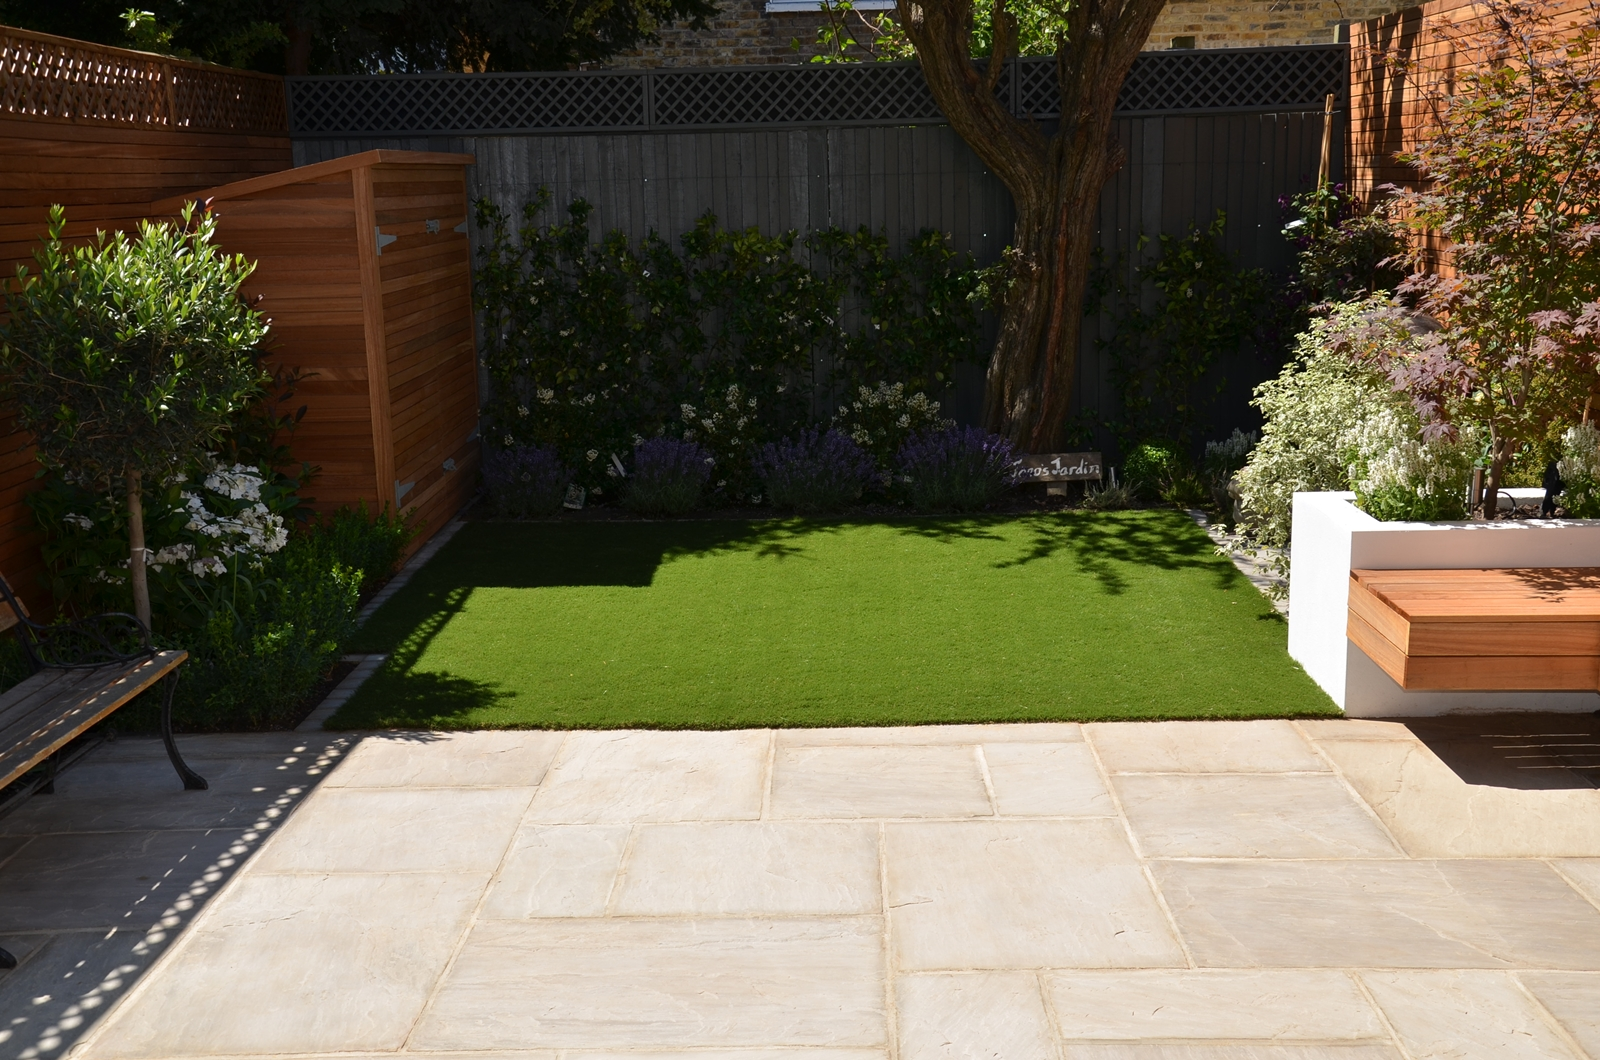 sandstone paving hardwood screen bespoke shed flaoting bench rich layered planting garden design london